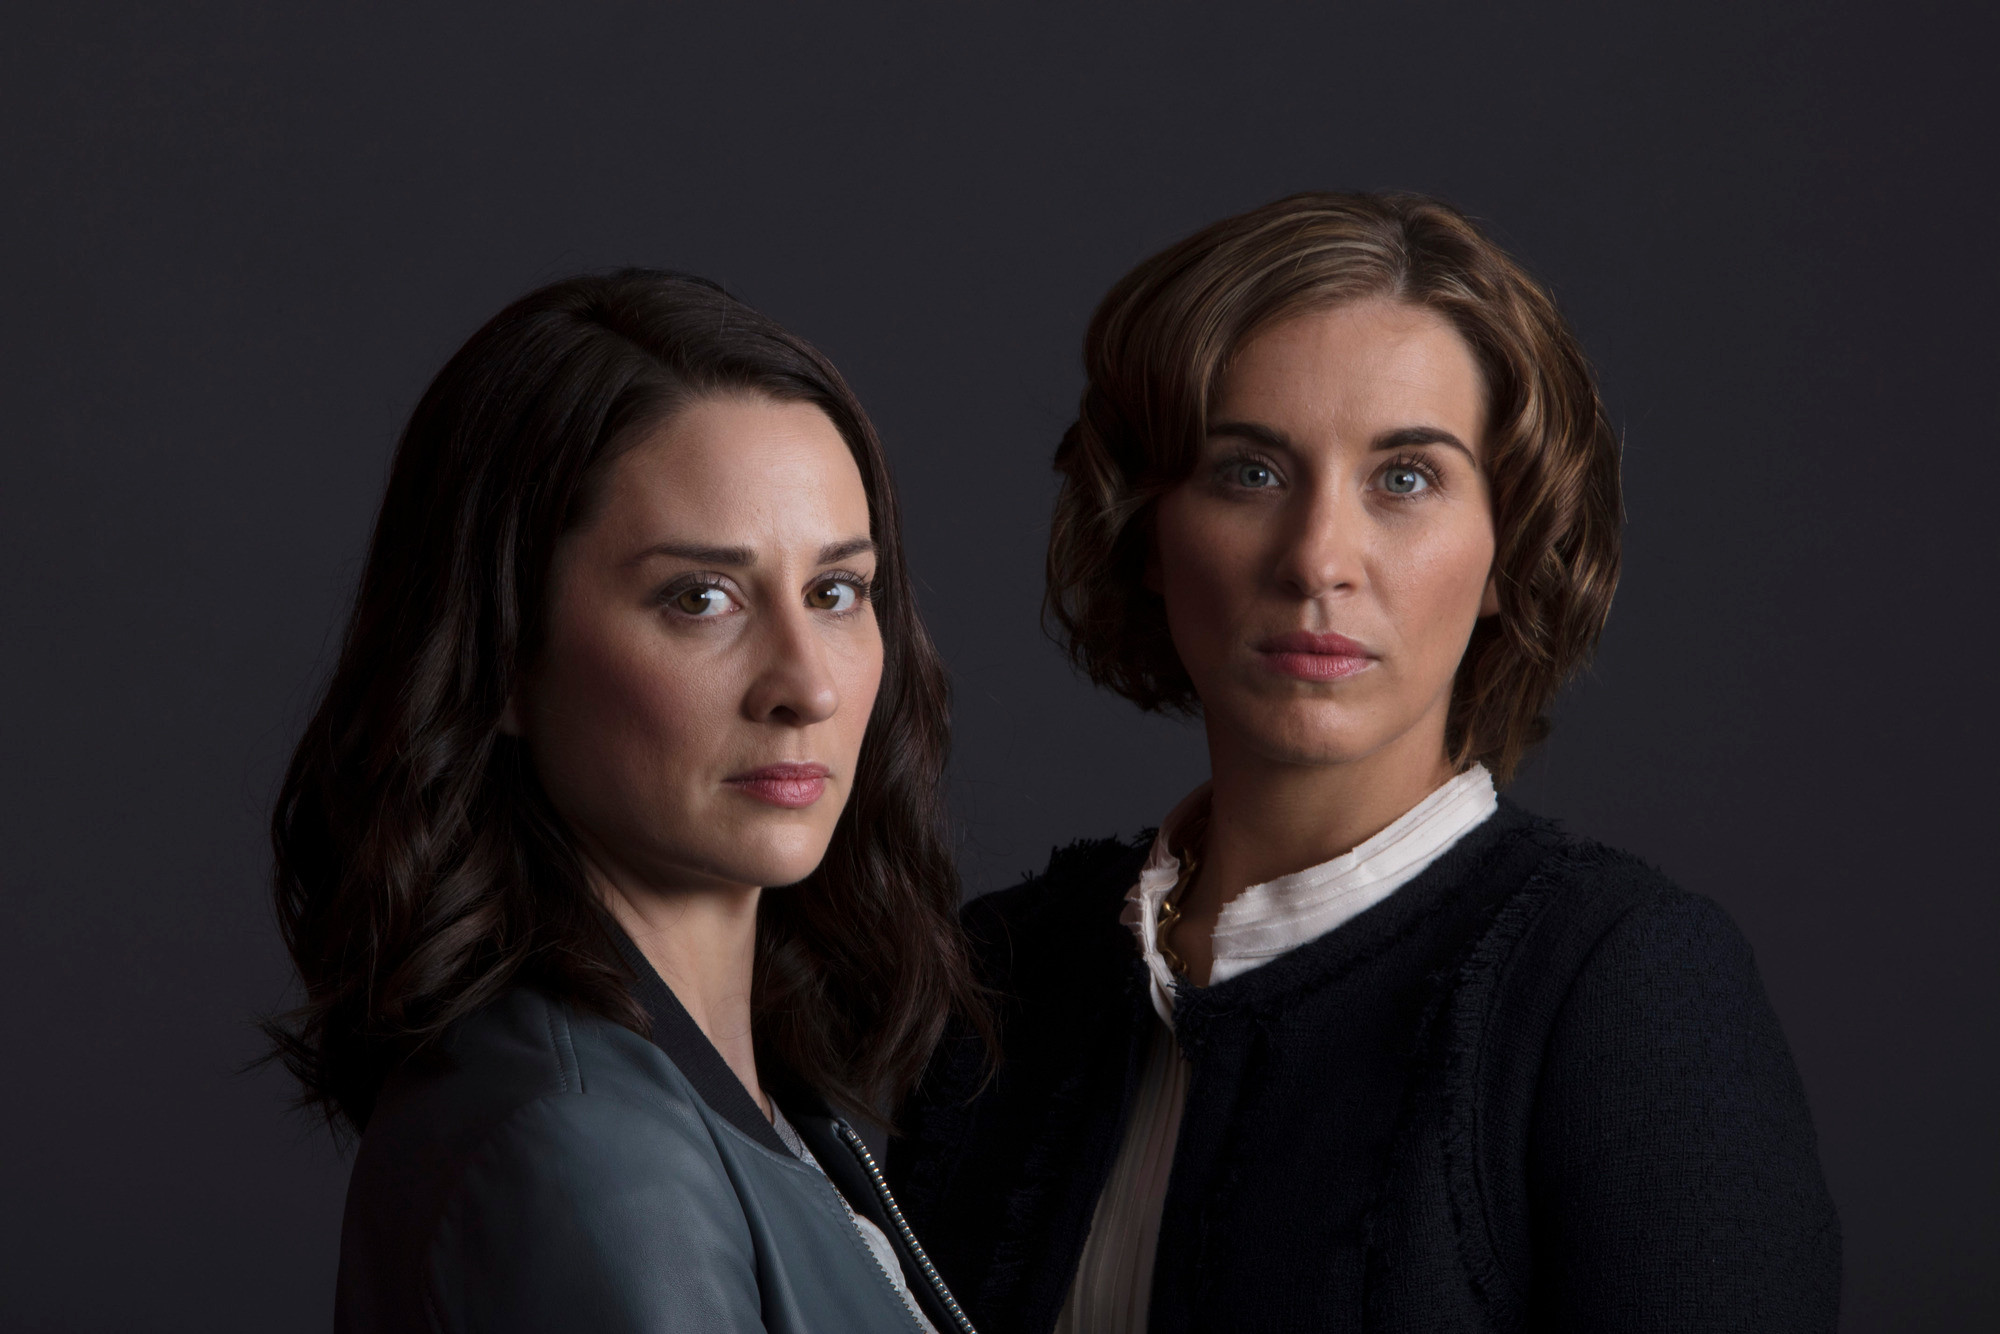 Morven Christie and her psychopathic replacement Vicky McClure in The Replacement (2017)